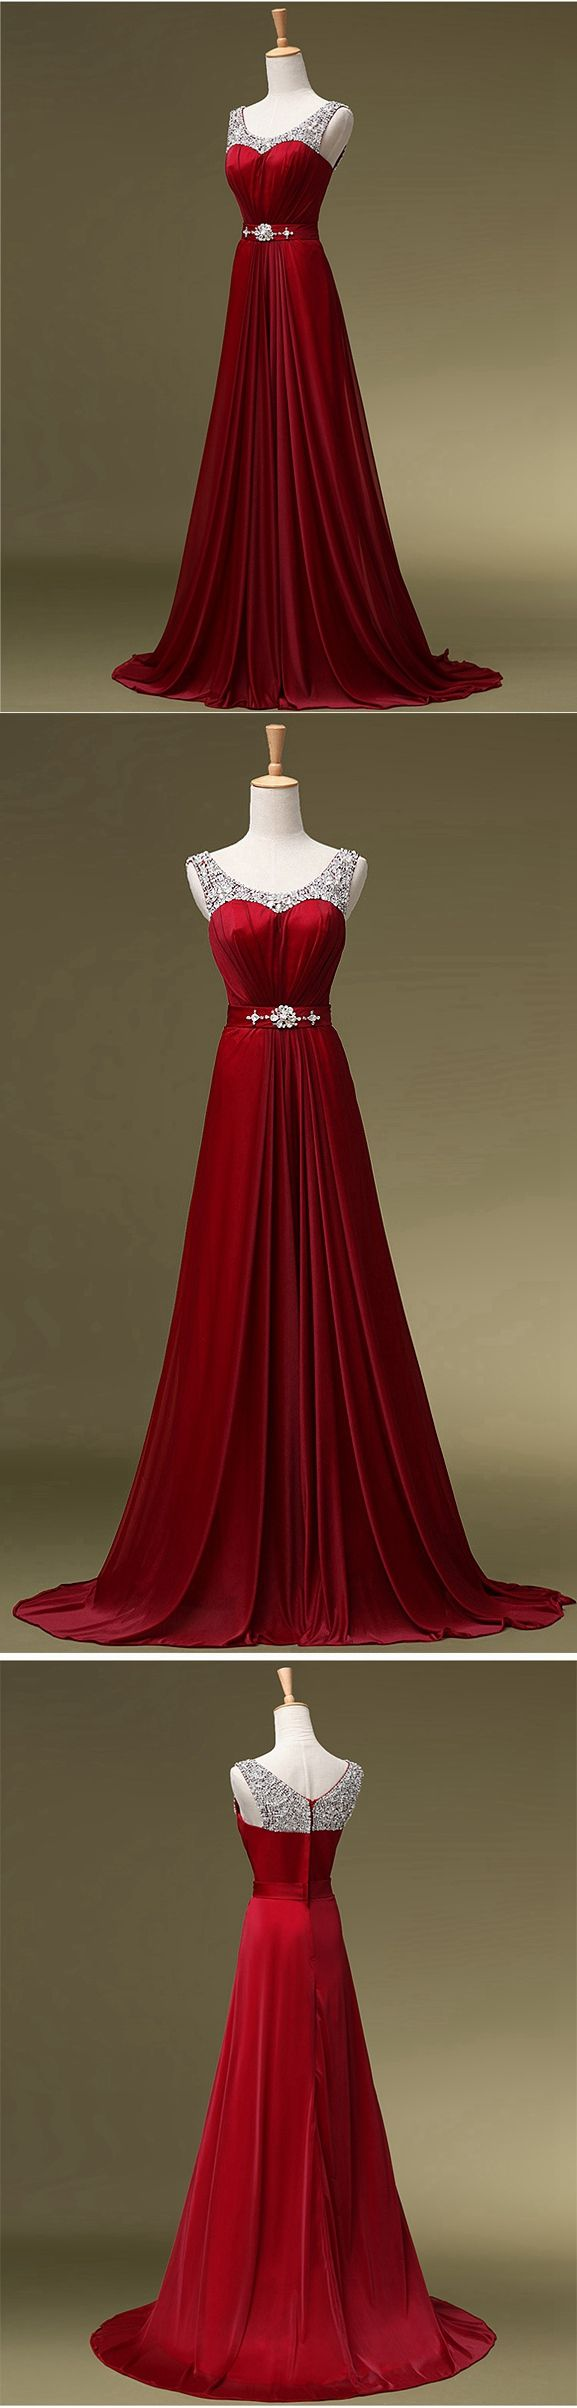 Burgundy Prom Dress, Prom Dresses,Graduation Party Dresses, Prom Dresses For Teens on Storenvy